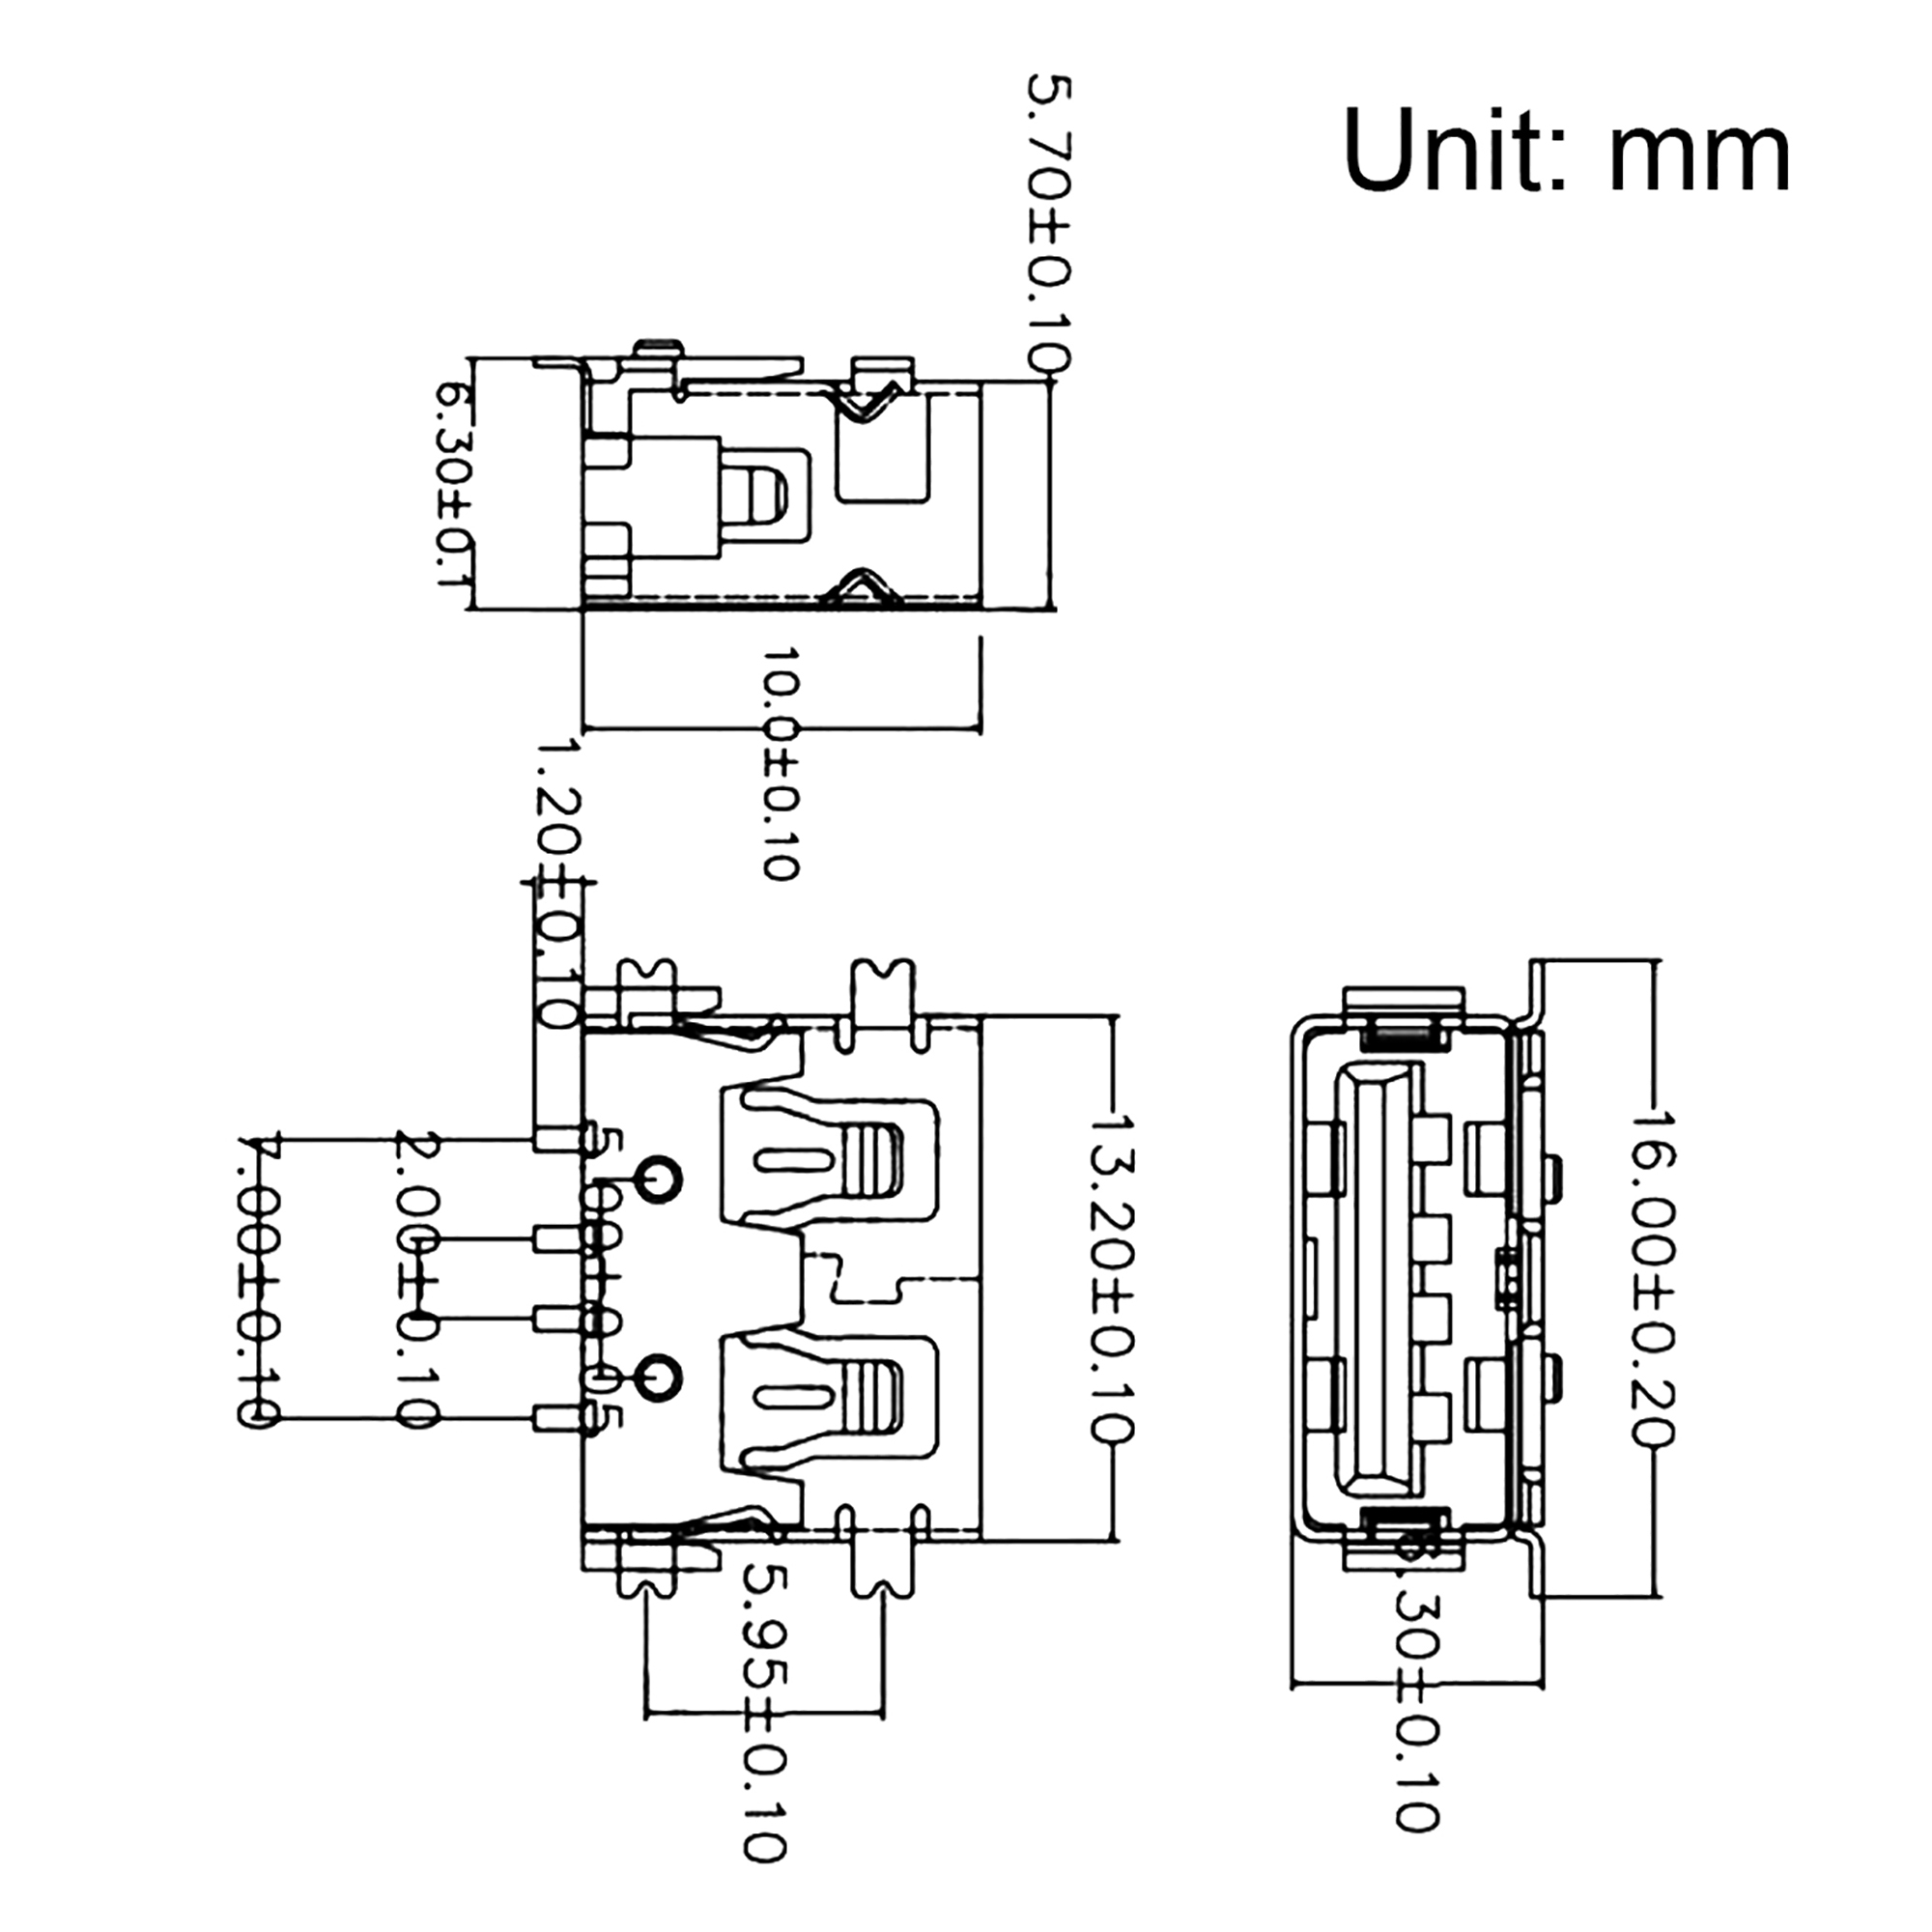 PCB USB Connector 2.0 A Type 4P 10mm Short Body SMT SMD 10pcs - image 2 of 4